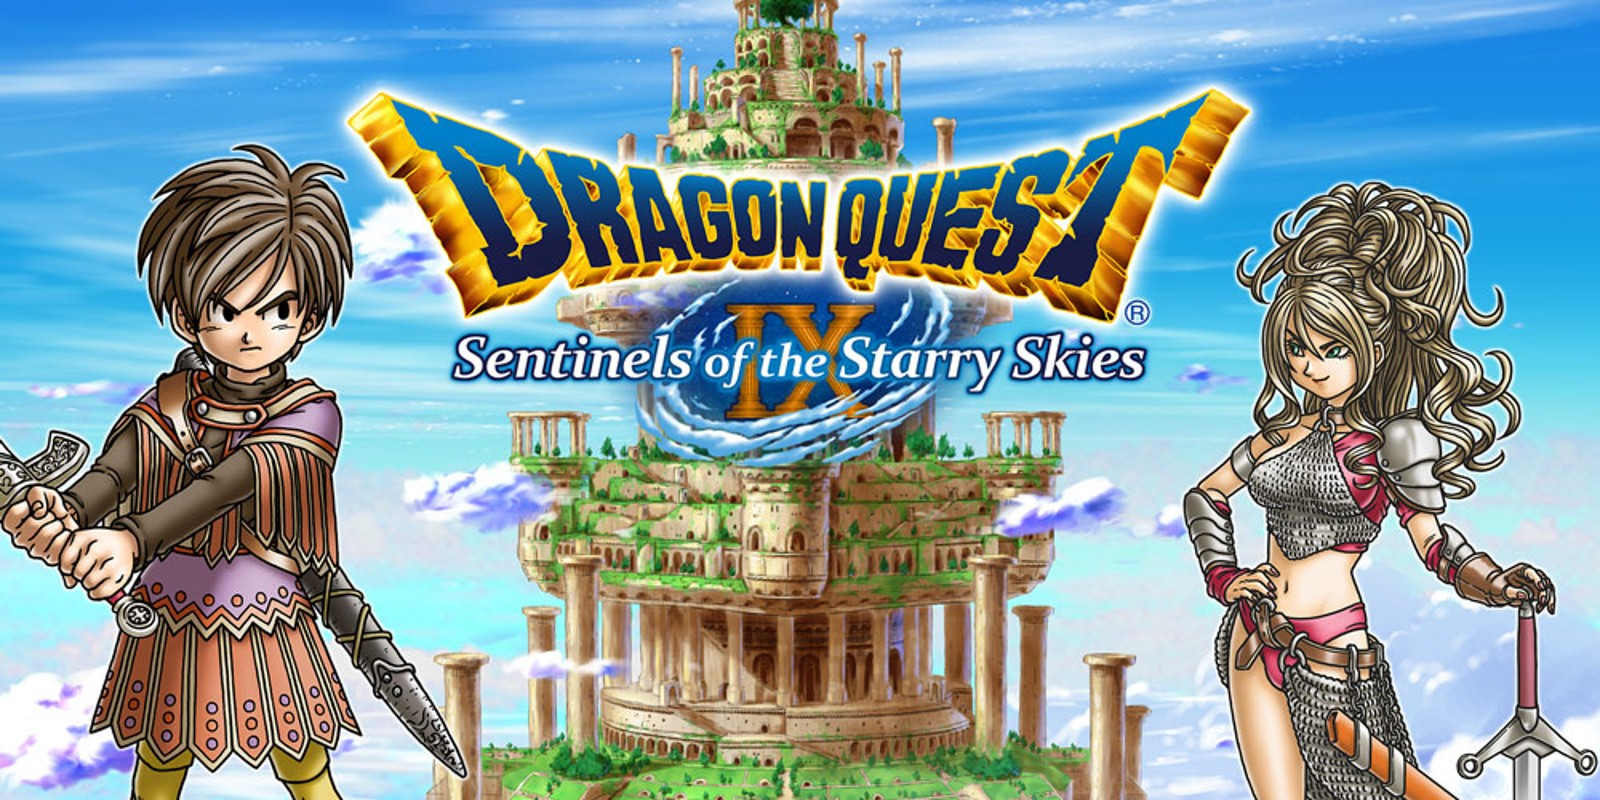 Dragon Quest IX: Sentinels of the Starry Skies | Nintendo DS | Games |  Nintendo